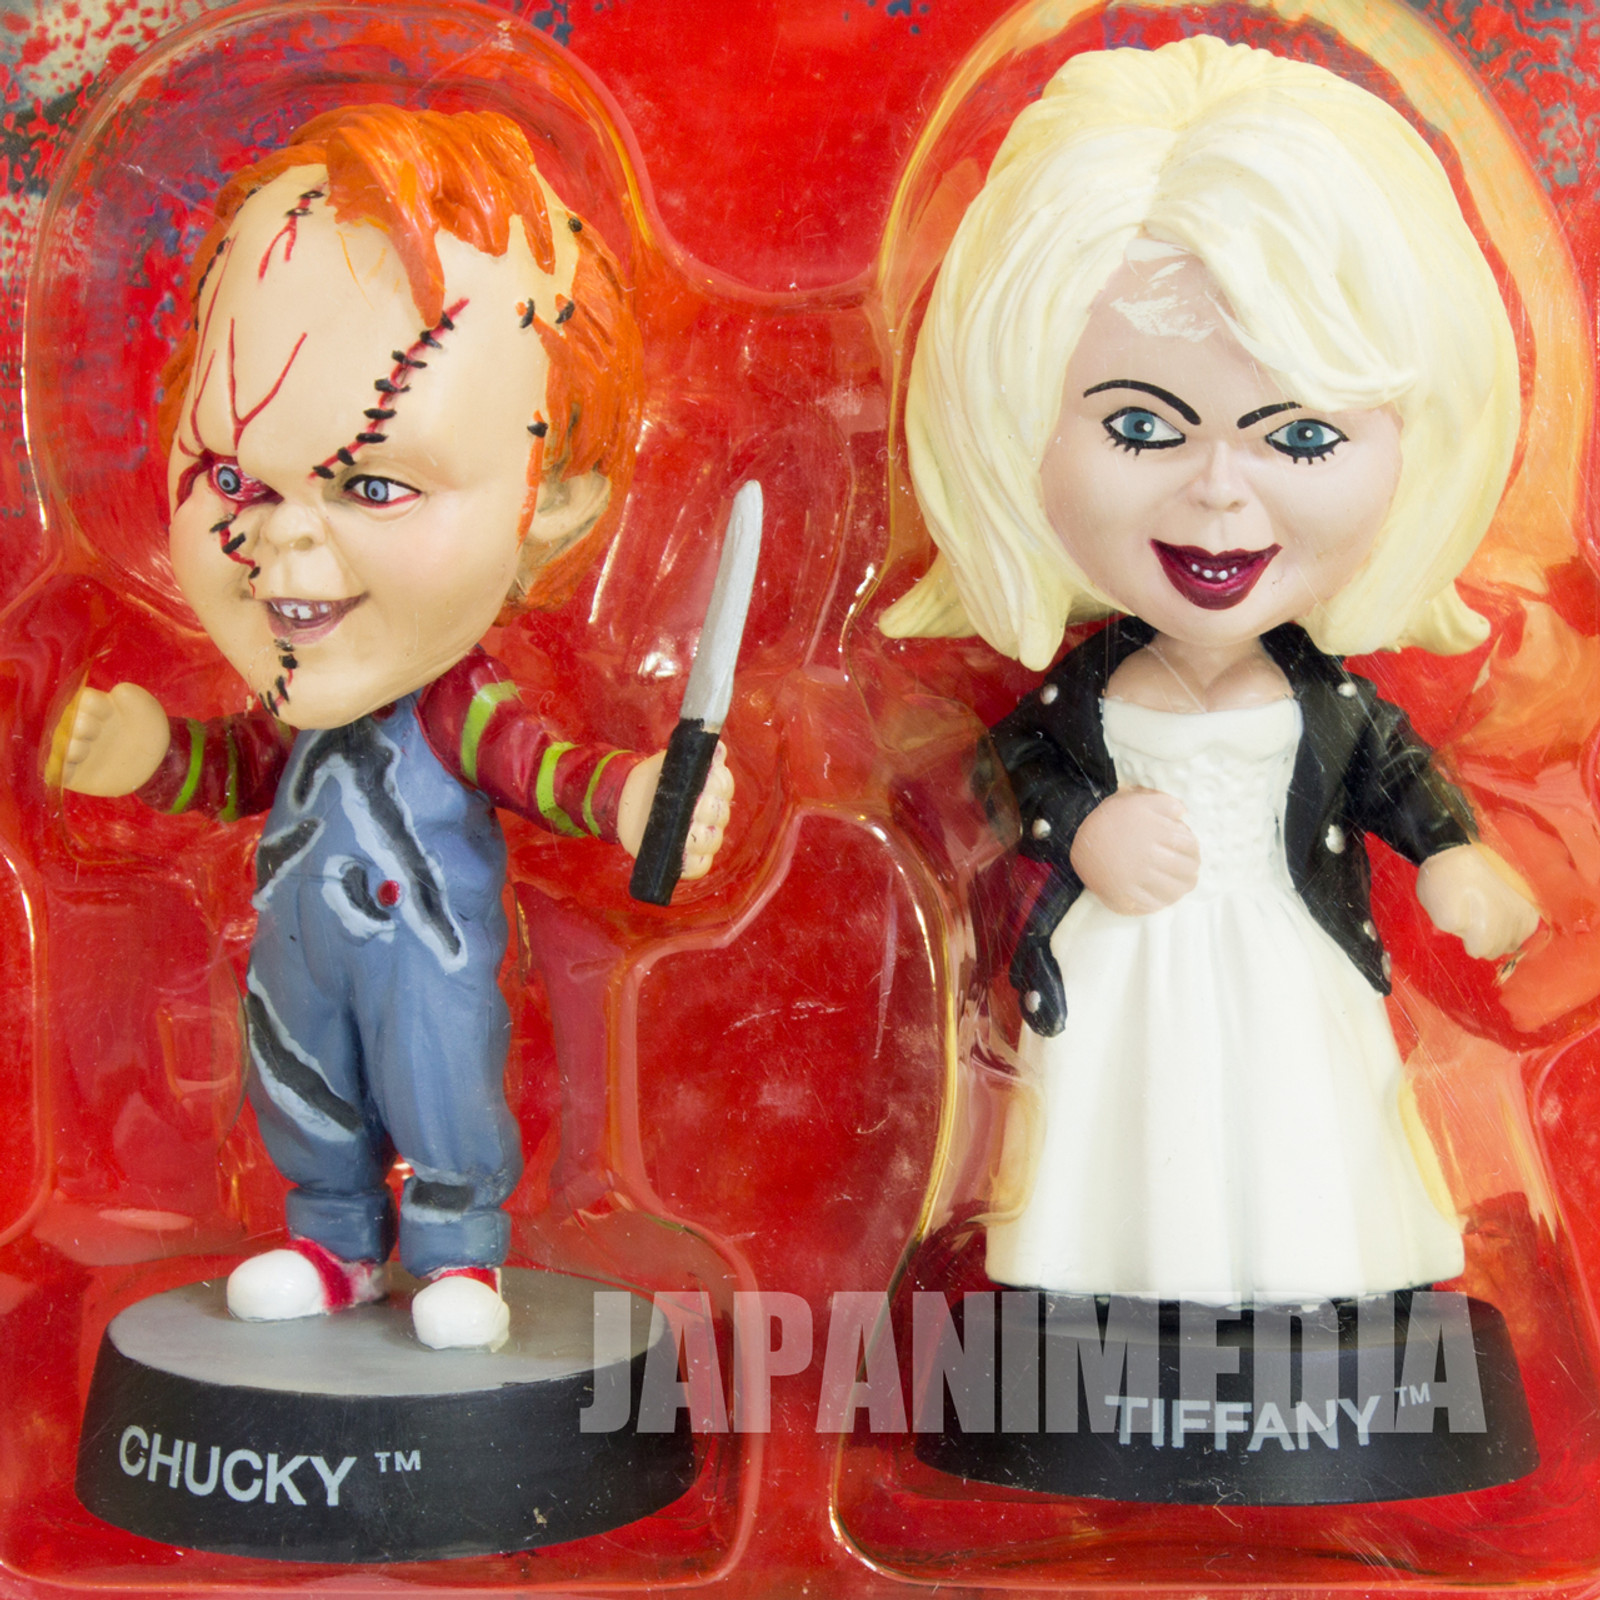 Bride of Chucky Tiiffany Little Big Head Figure 2pc set Sideshow Toy / Child's Play